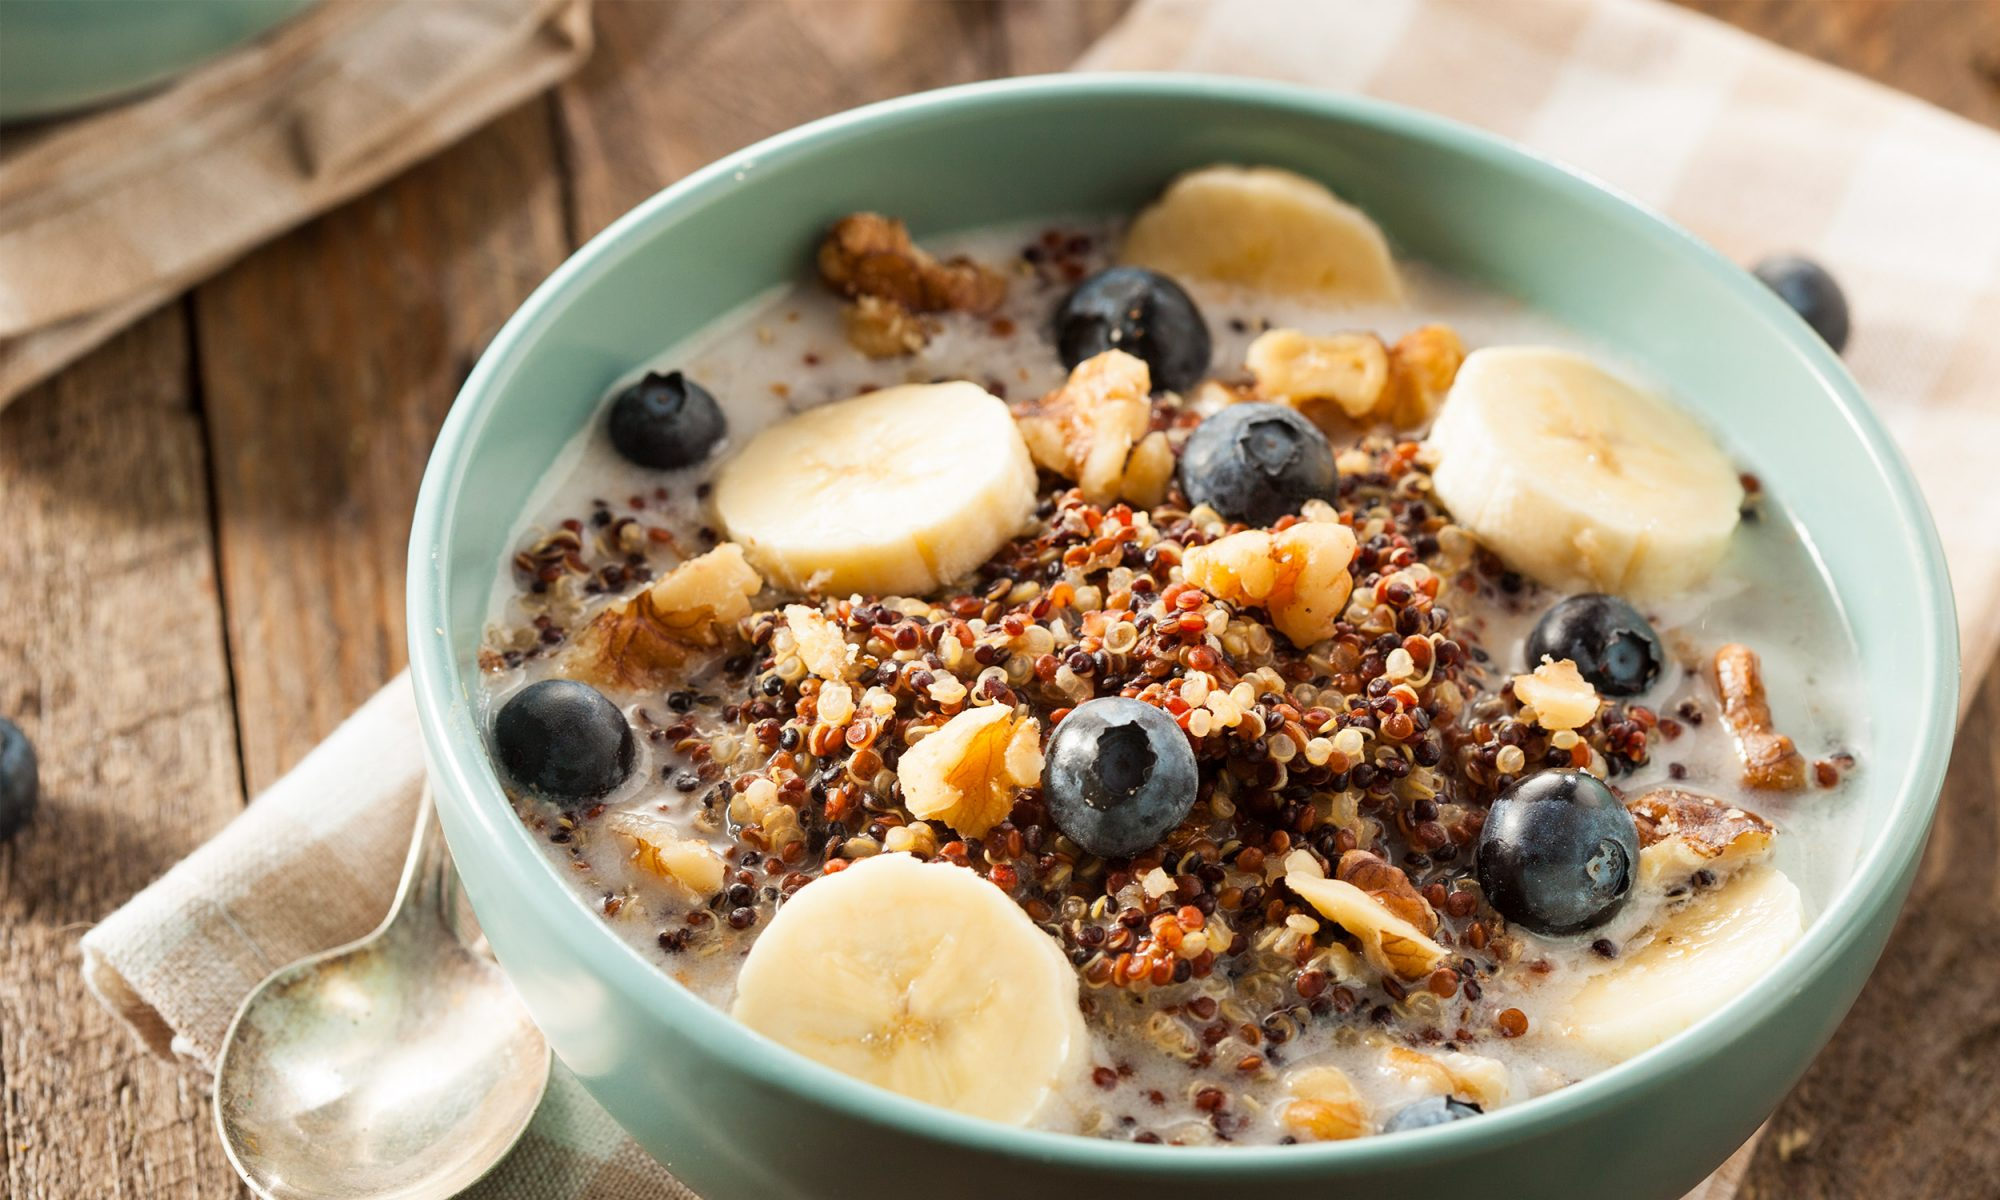 EC: 5 Healthy Breakfast Foods That Most People Don't Think About